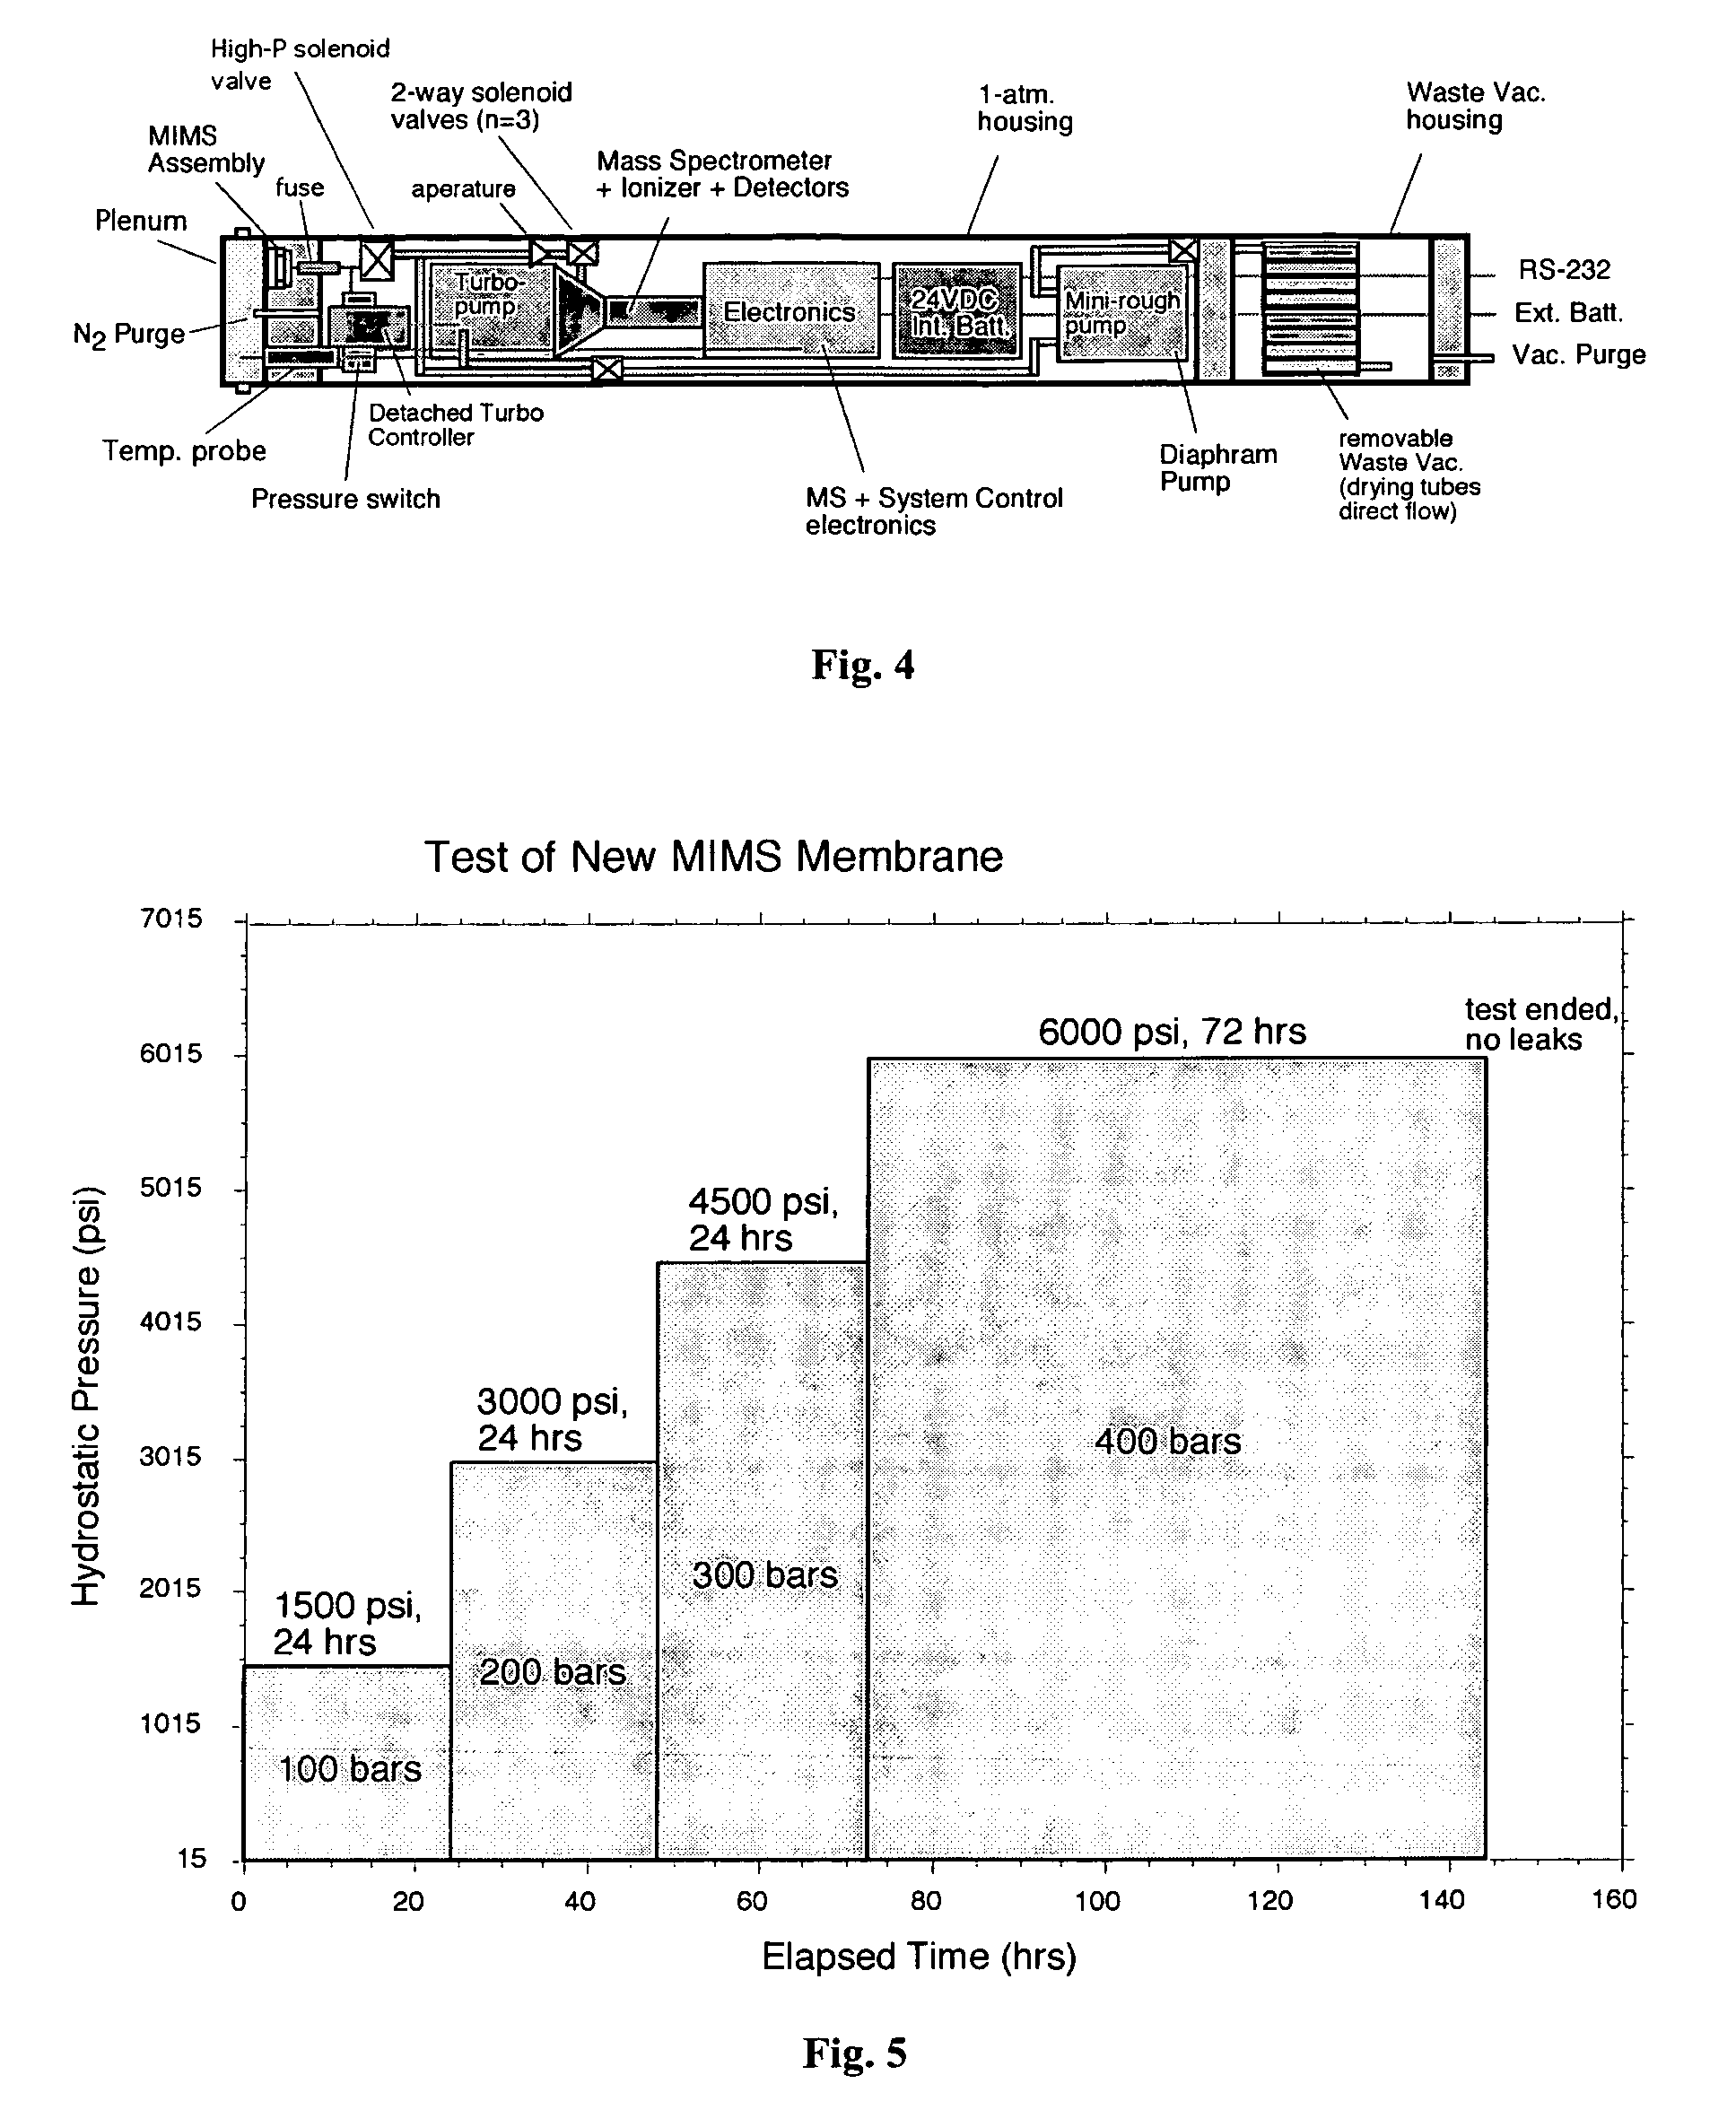 Condensed Phase Membrane Introduction Mass Spectrometry ... |Membrane Introduction Mass Spectrometry